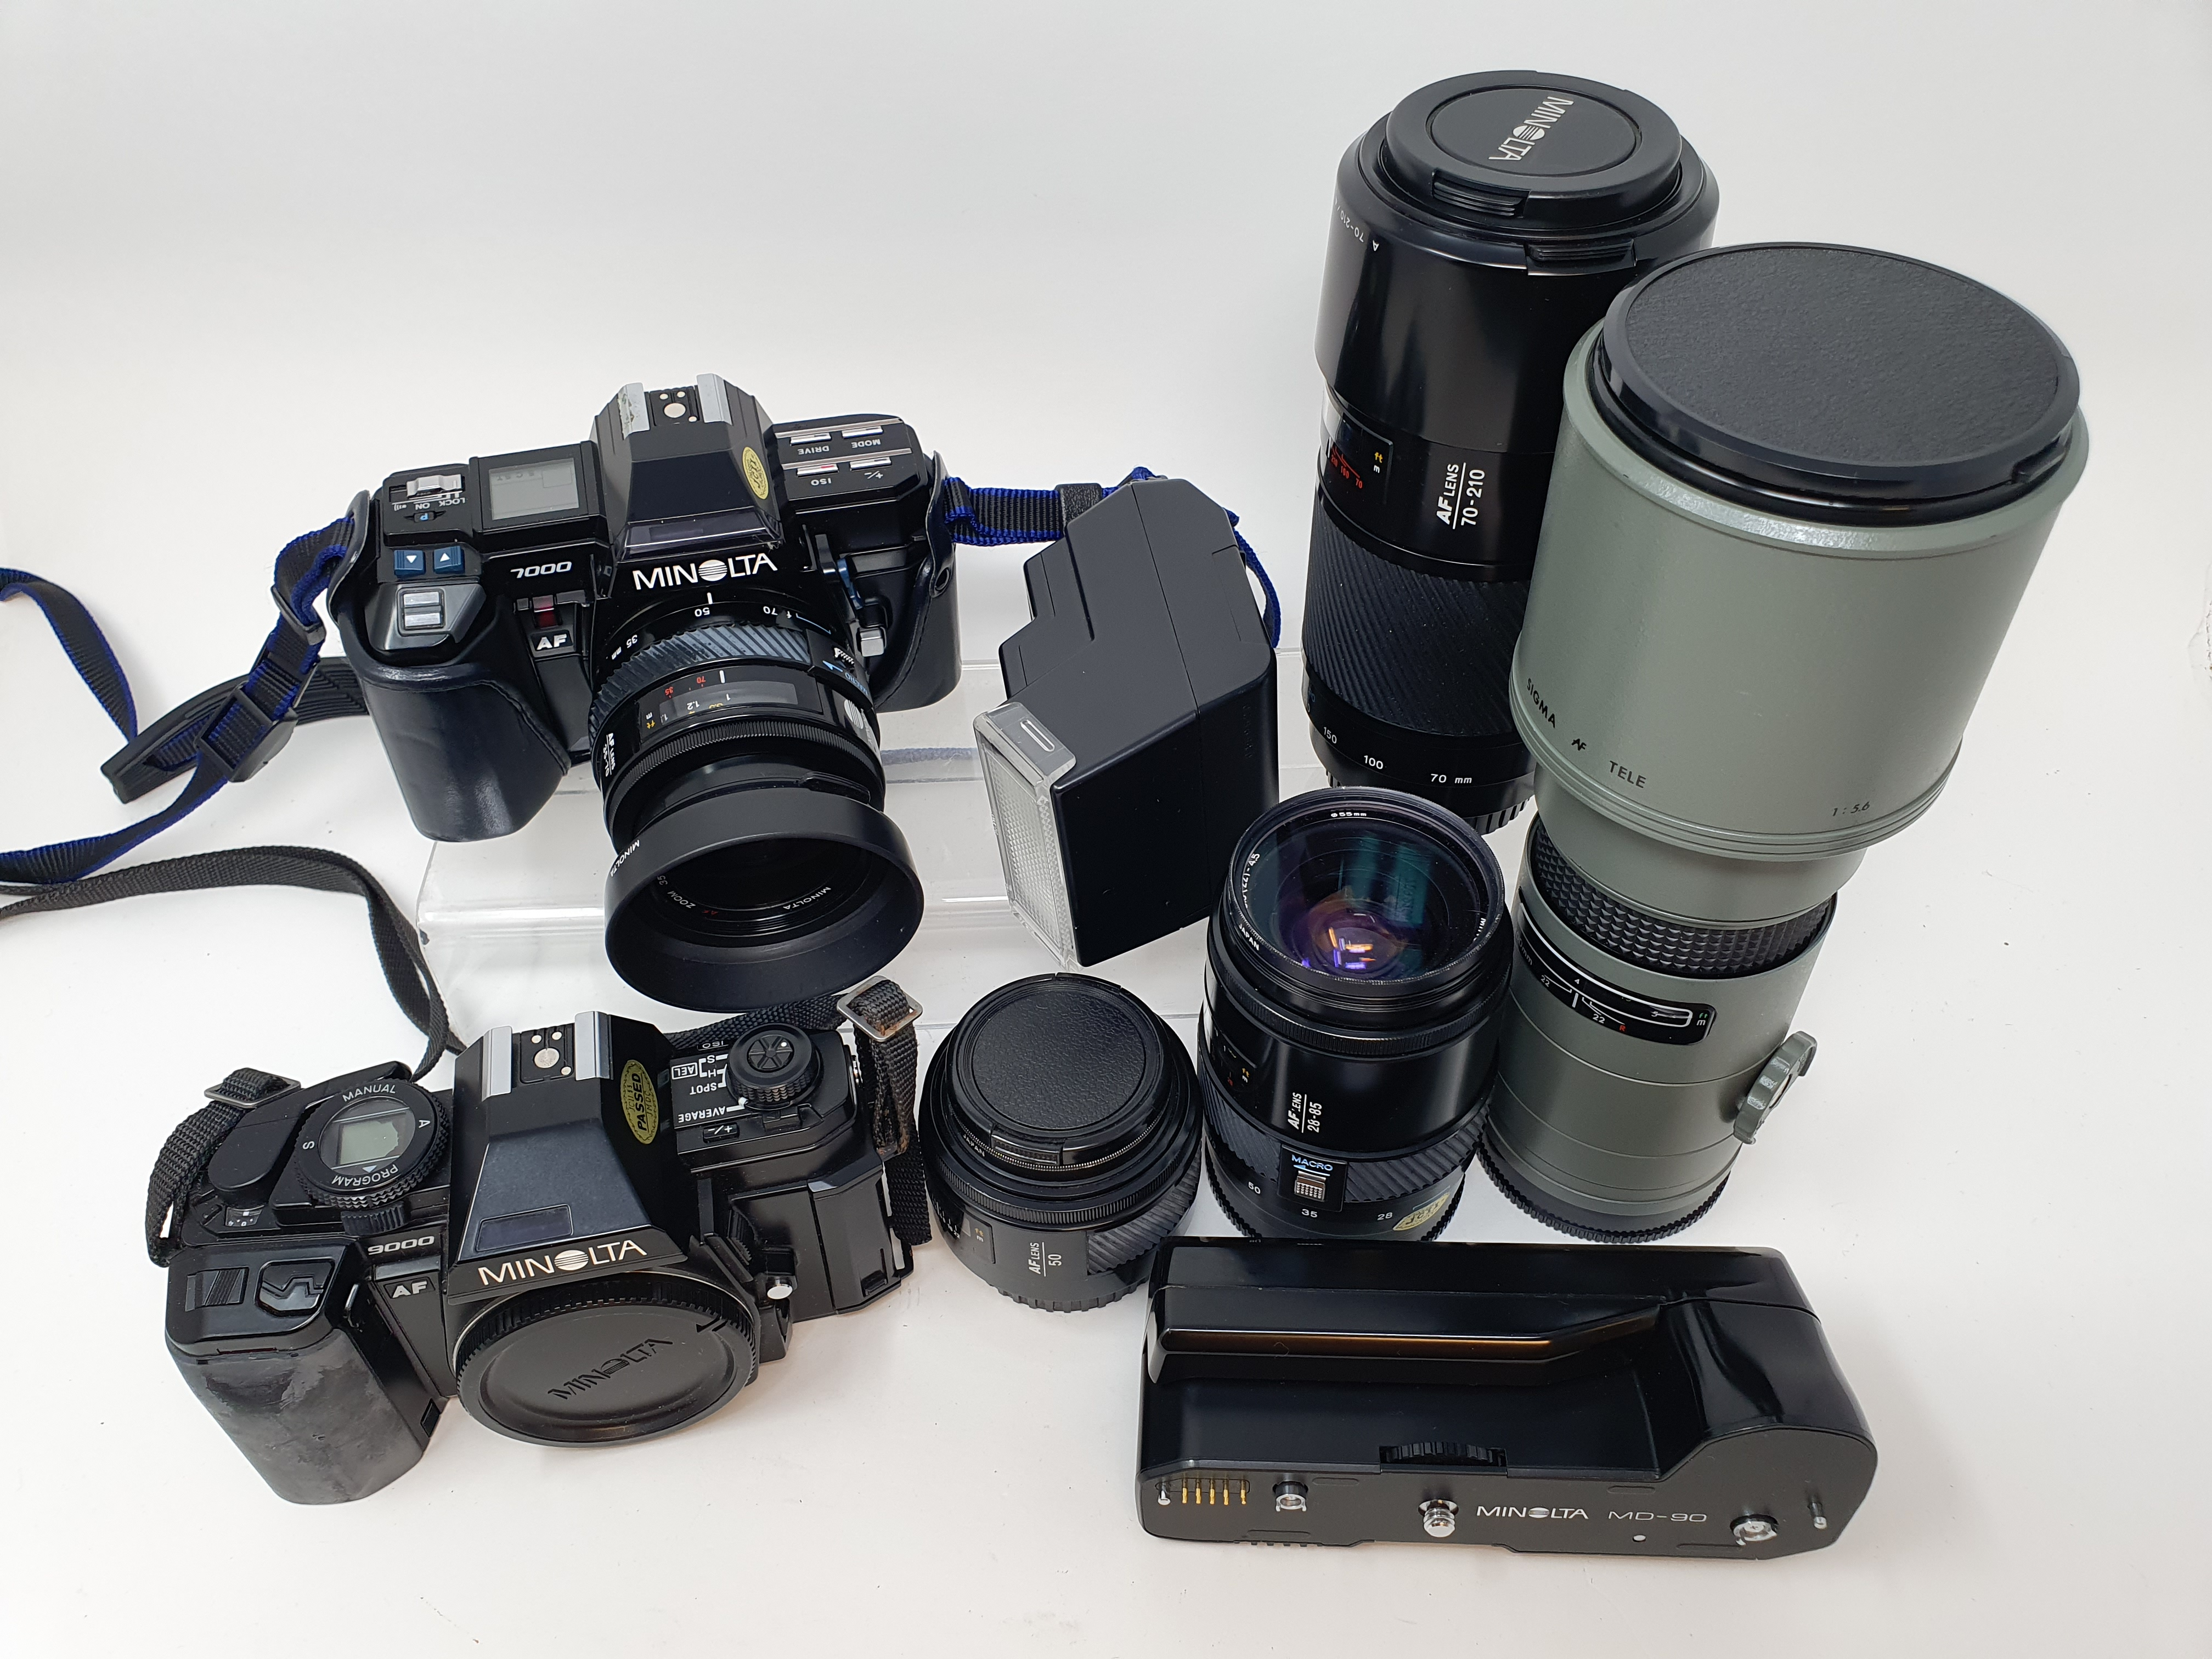 A Minolta 9000 camera, a Minolta 7000 camera, various lenses and accessories in a carrying case - Image 7 of 7